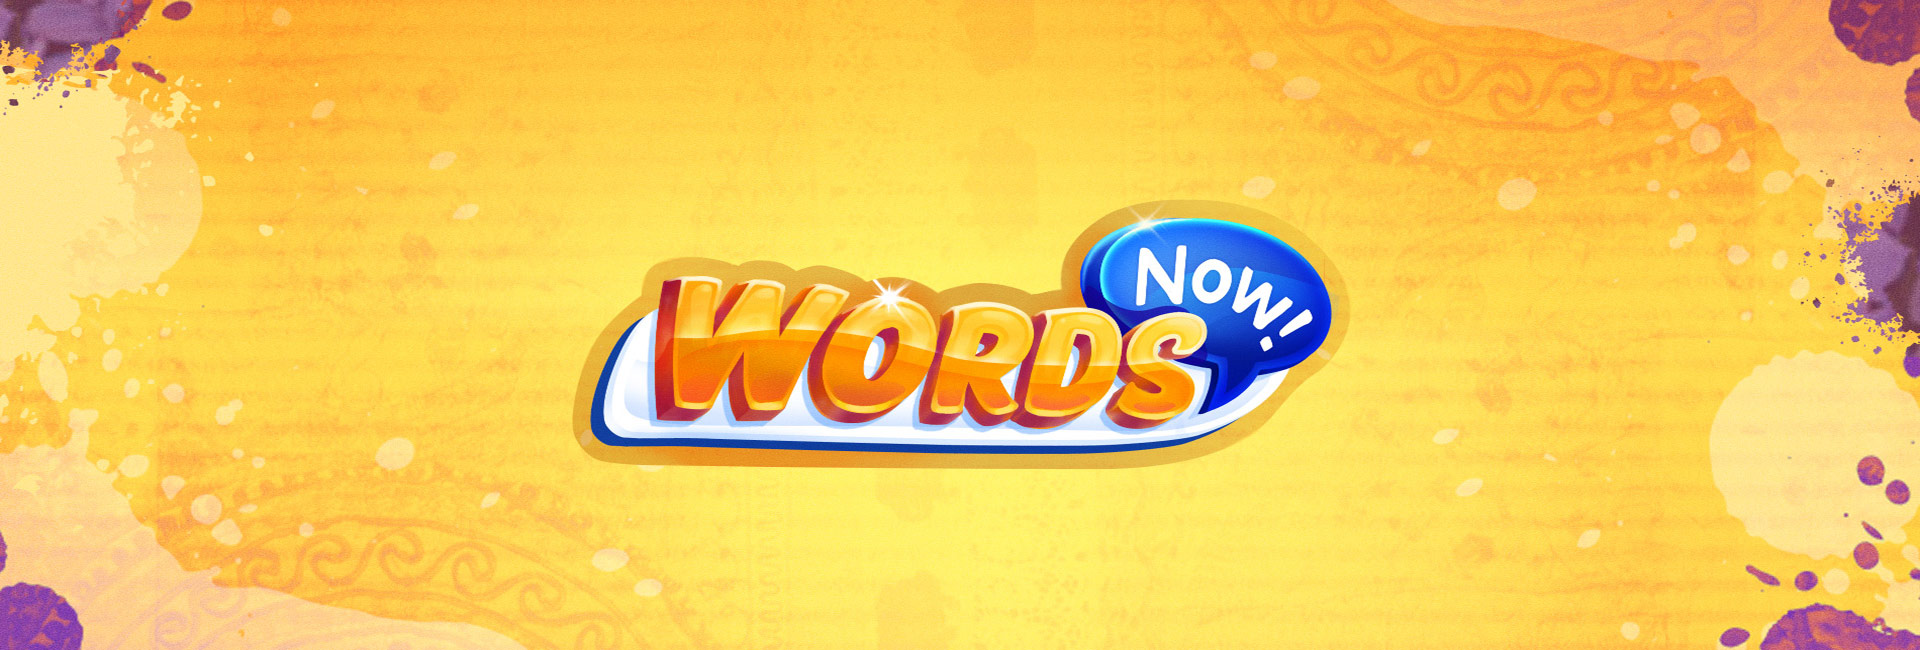 Words Now!